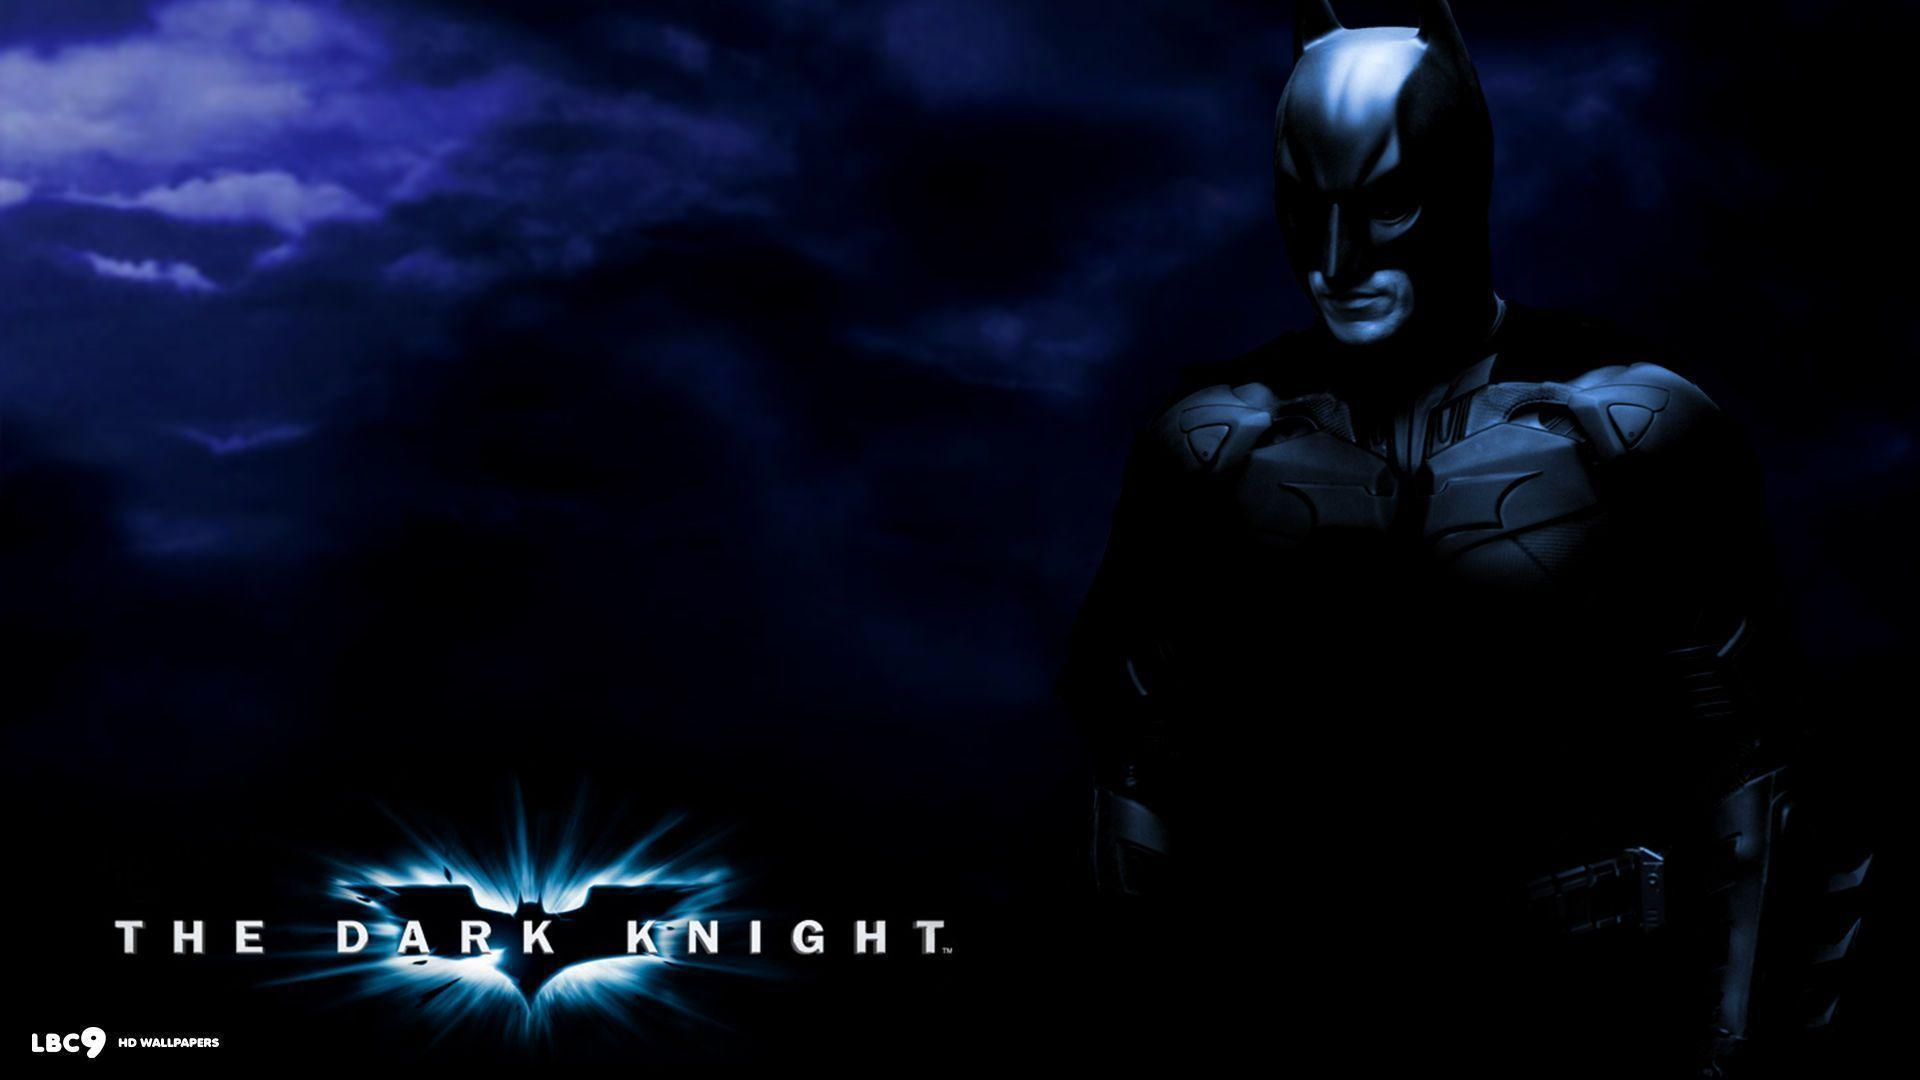 dark knight wallpaper 3/17 | movie hd backgrounds